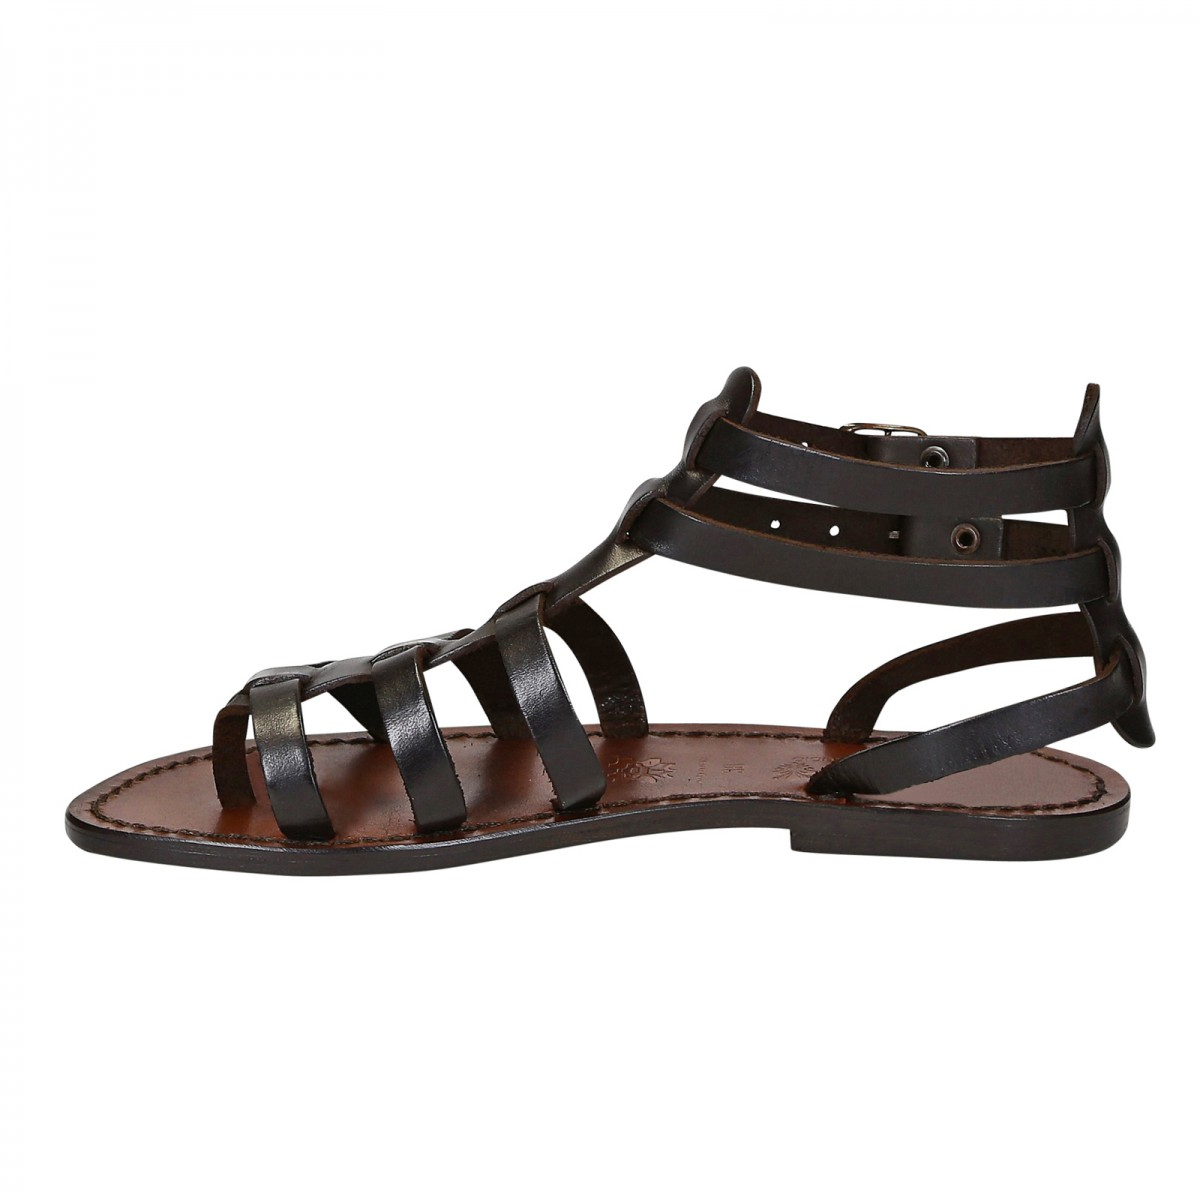 1f3e1caa0022 Dark brown gladiator sandals for women real leather Handmade in Italy.  Previous. Next